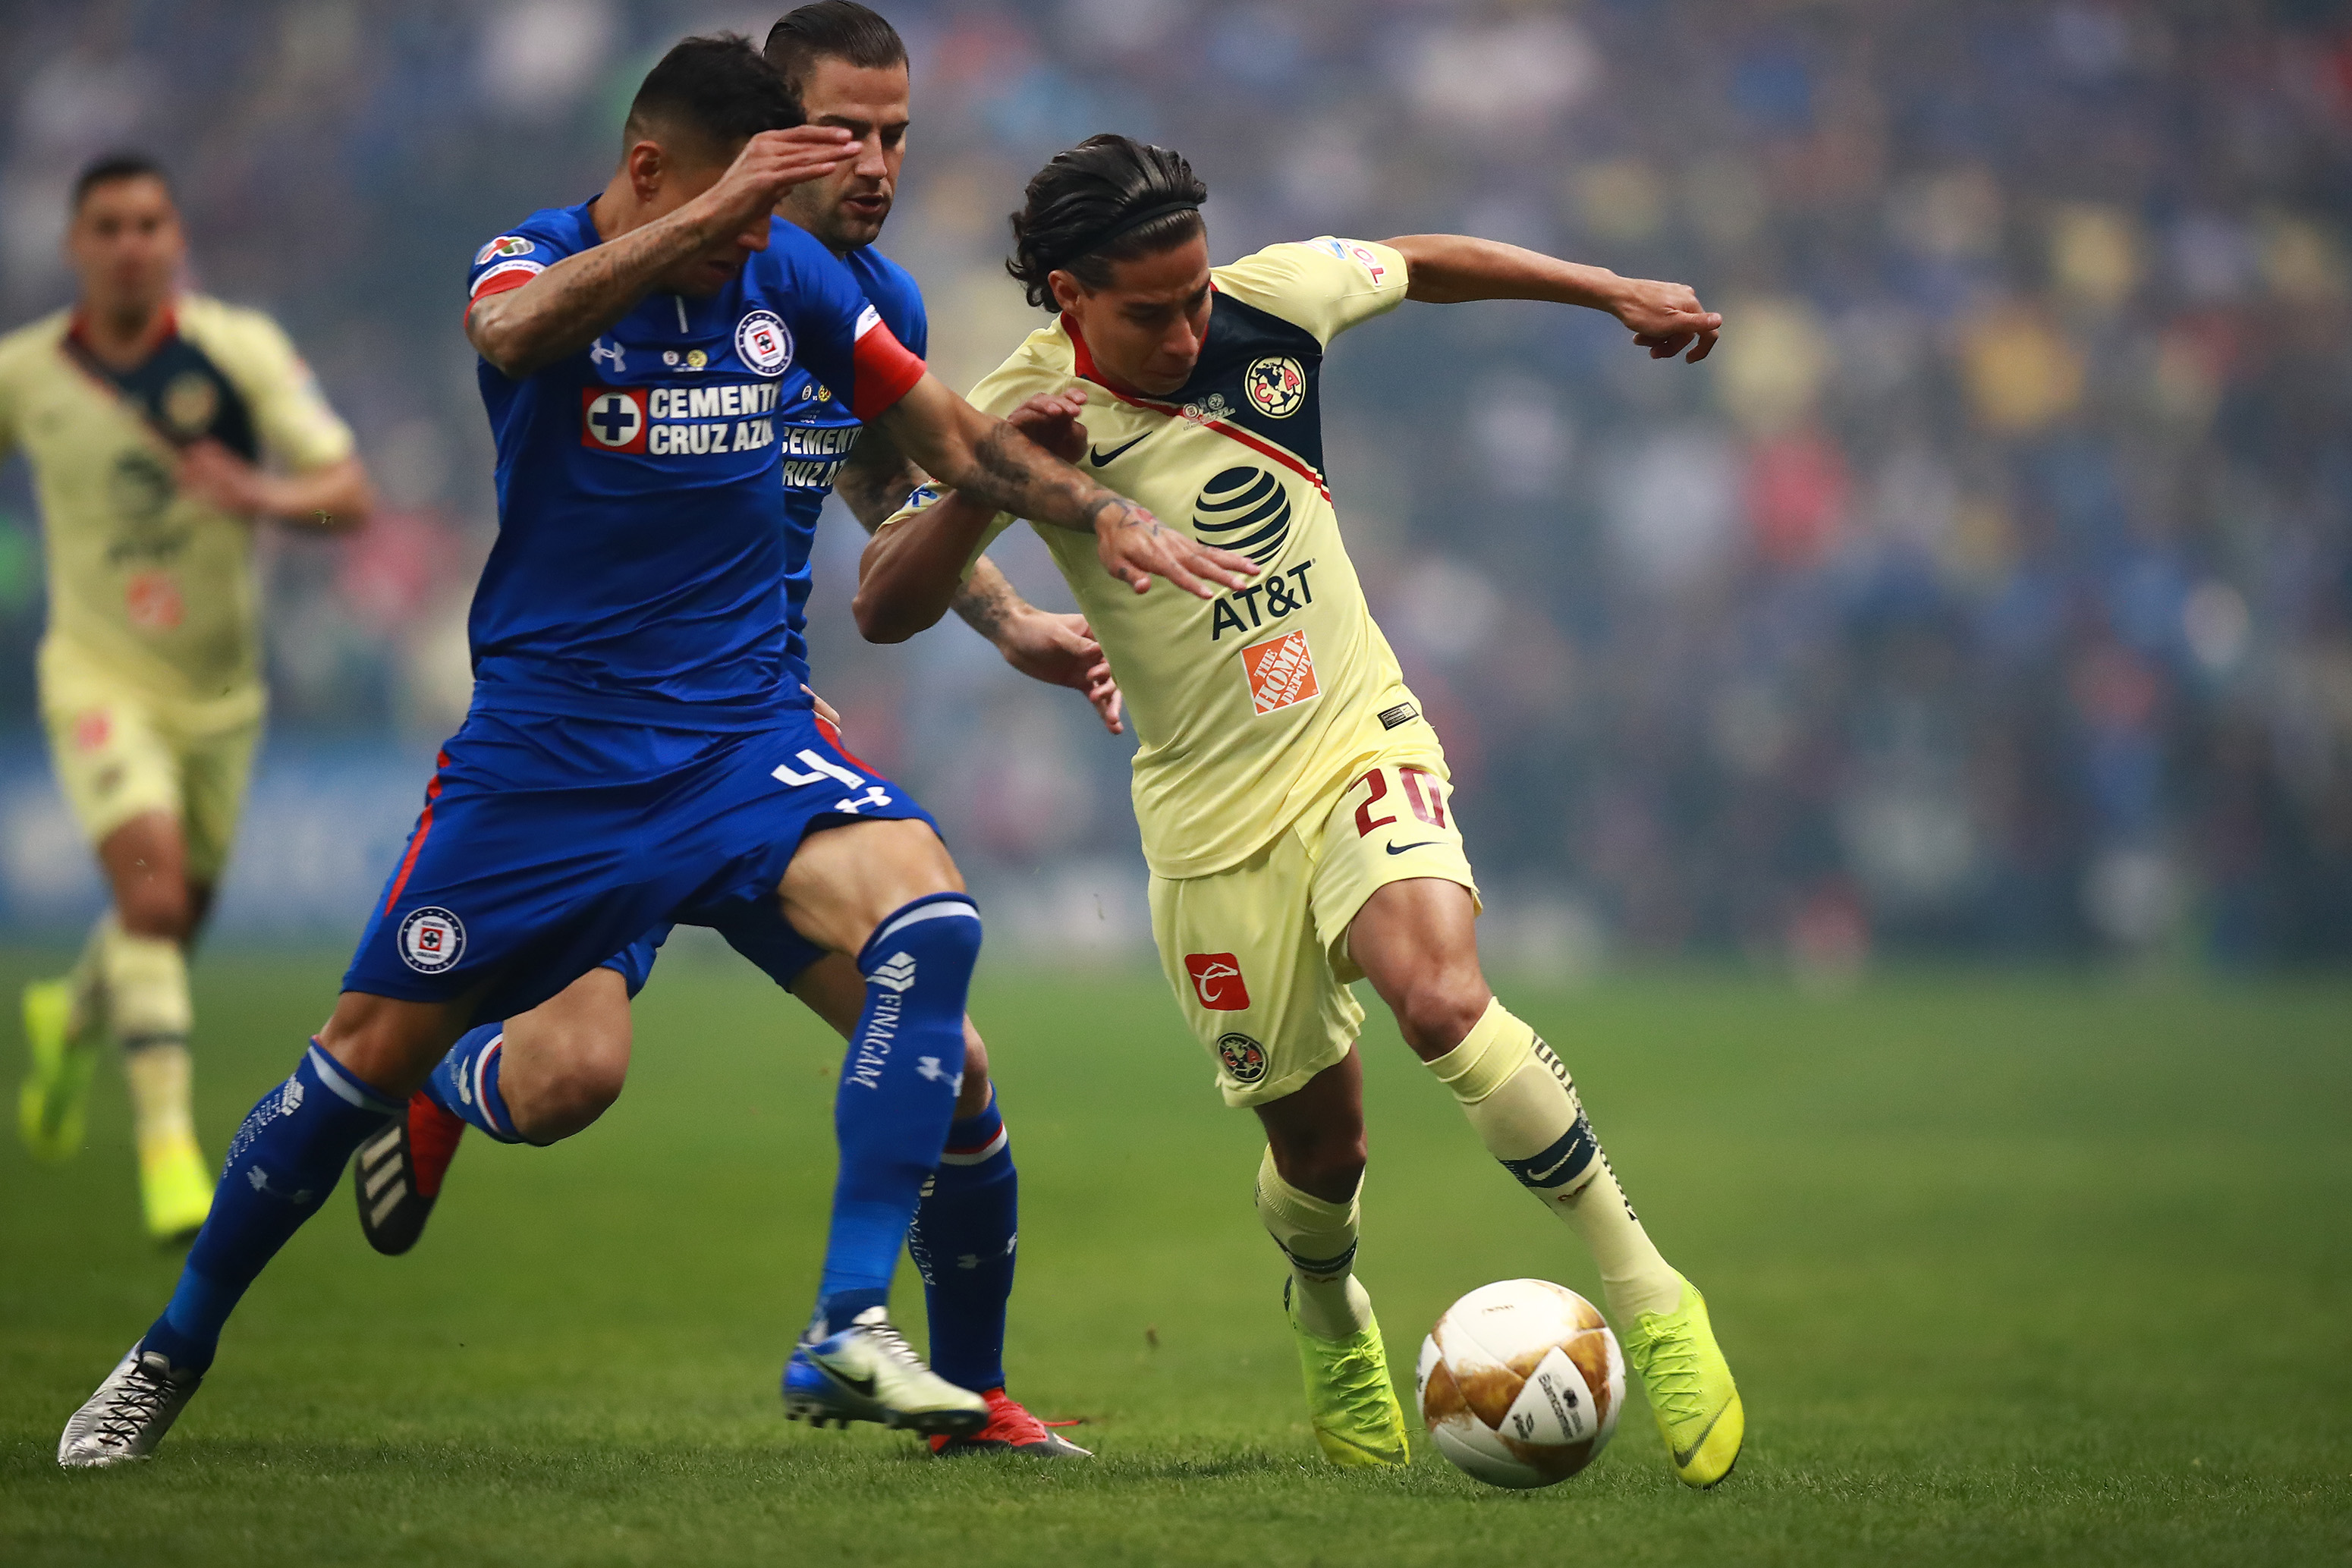 Clausura 2019, Liga MX, Calendario, Partidos Los Pleyers